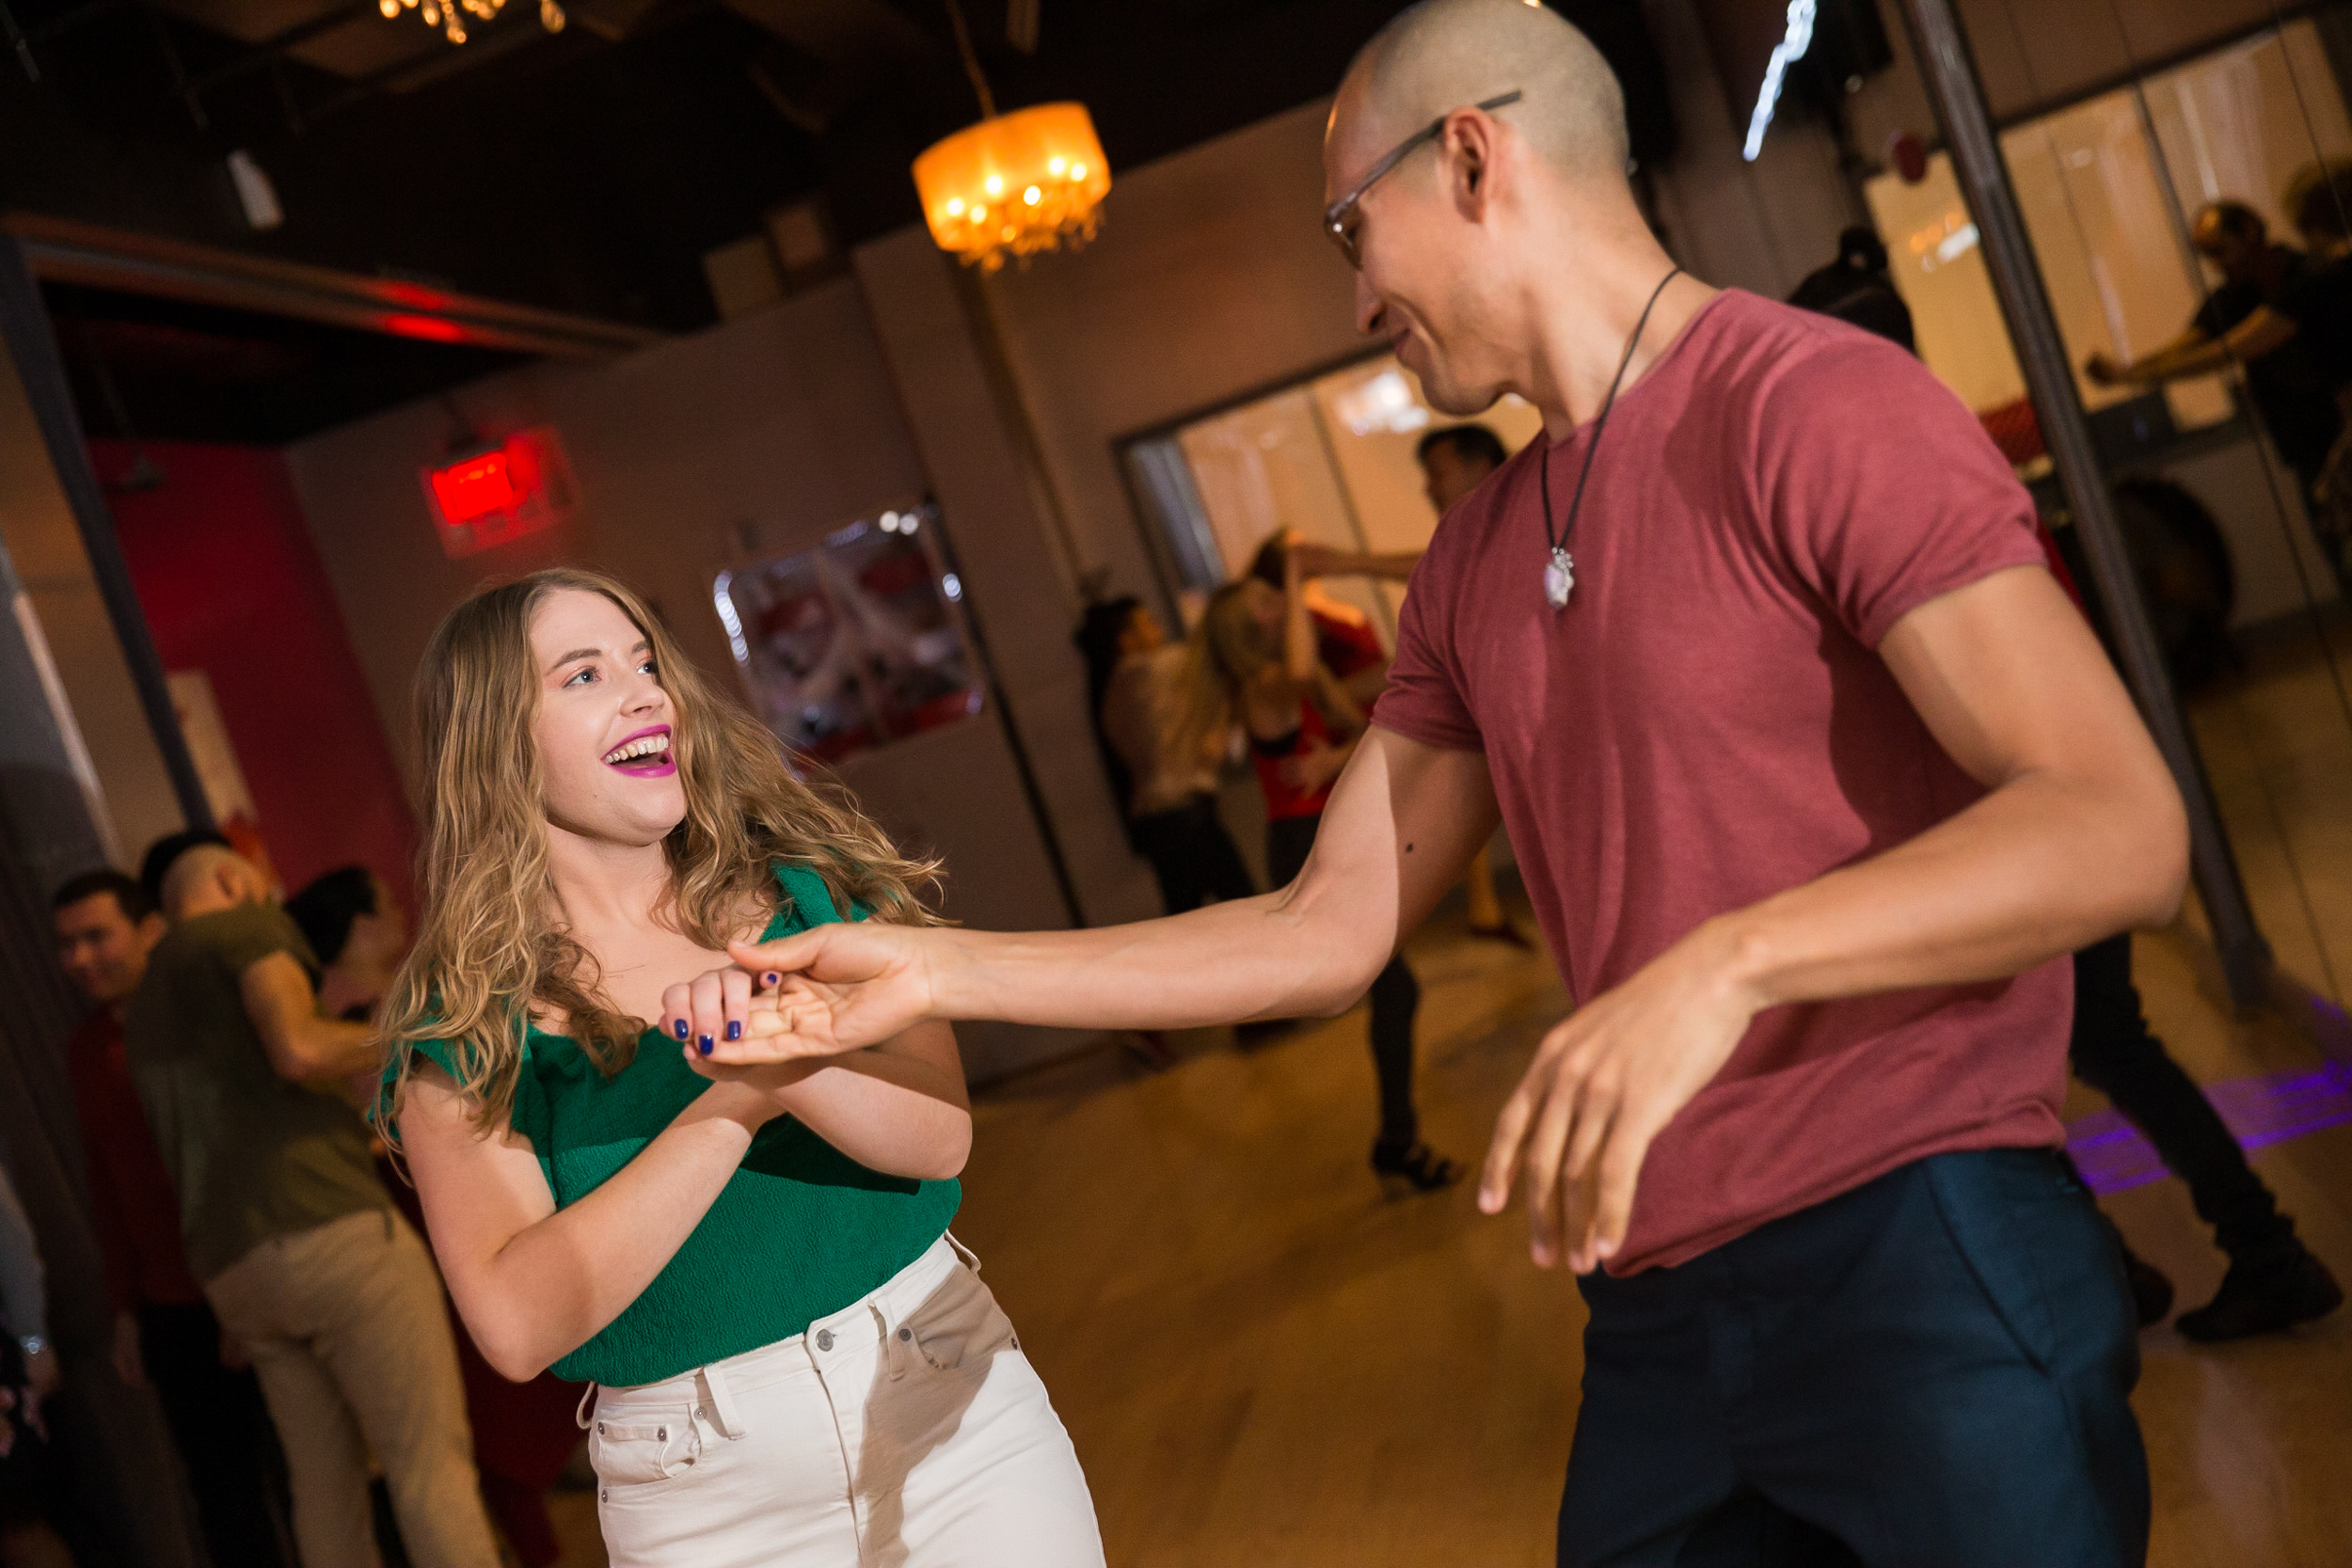 Romantic Valentine's day event in the heart of Bethesa - dance lesson, sweet bites and wine